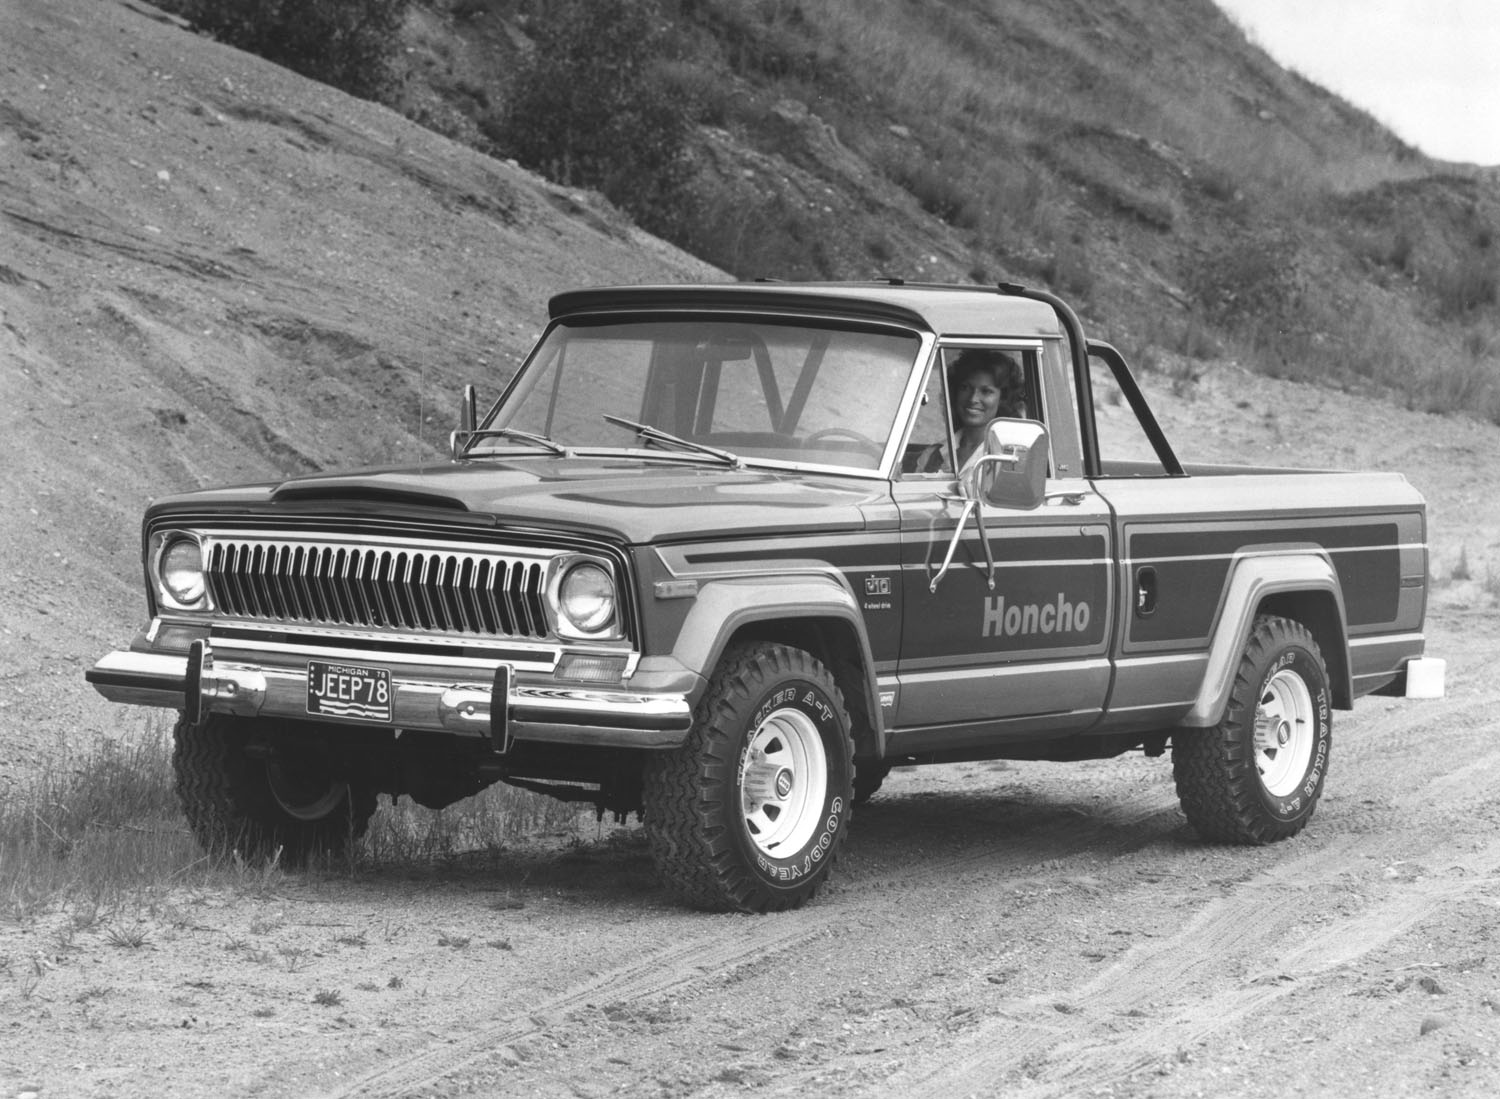 1978 jeep j-10 pickup | jeep collection